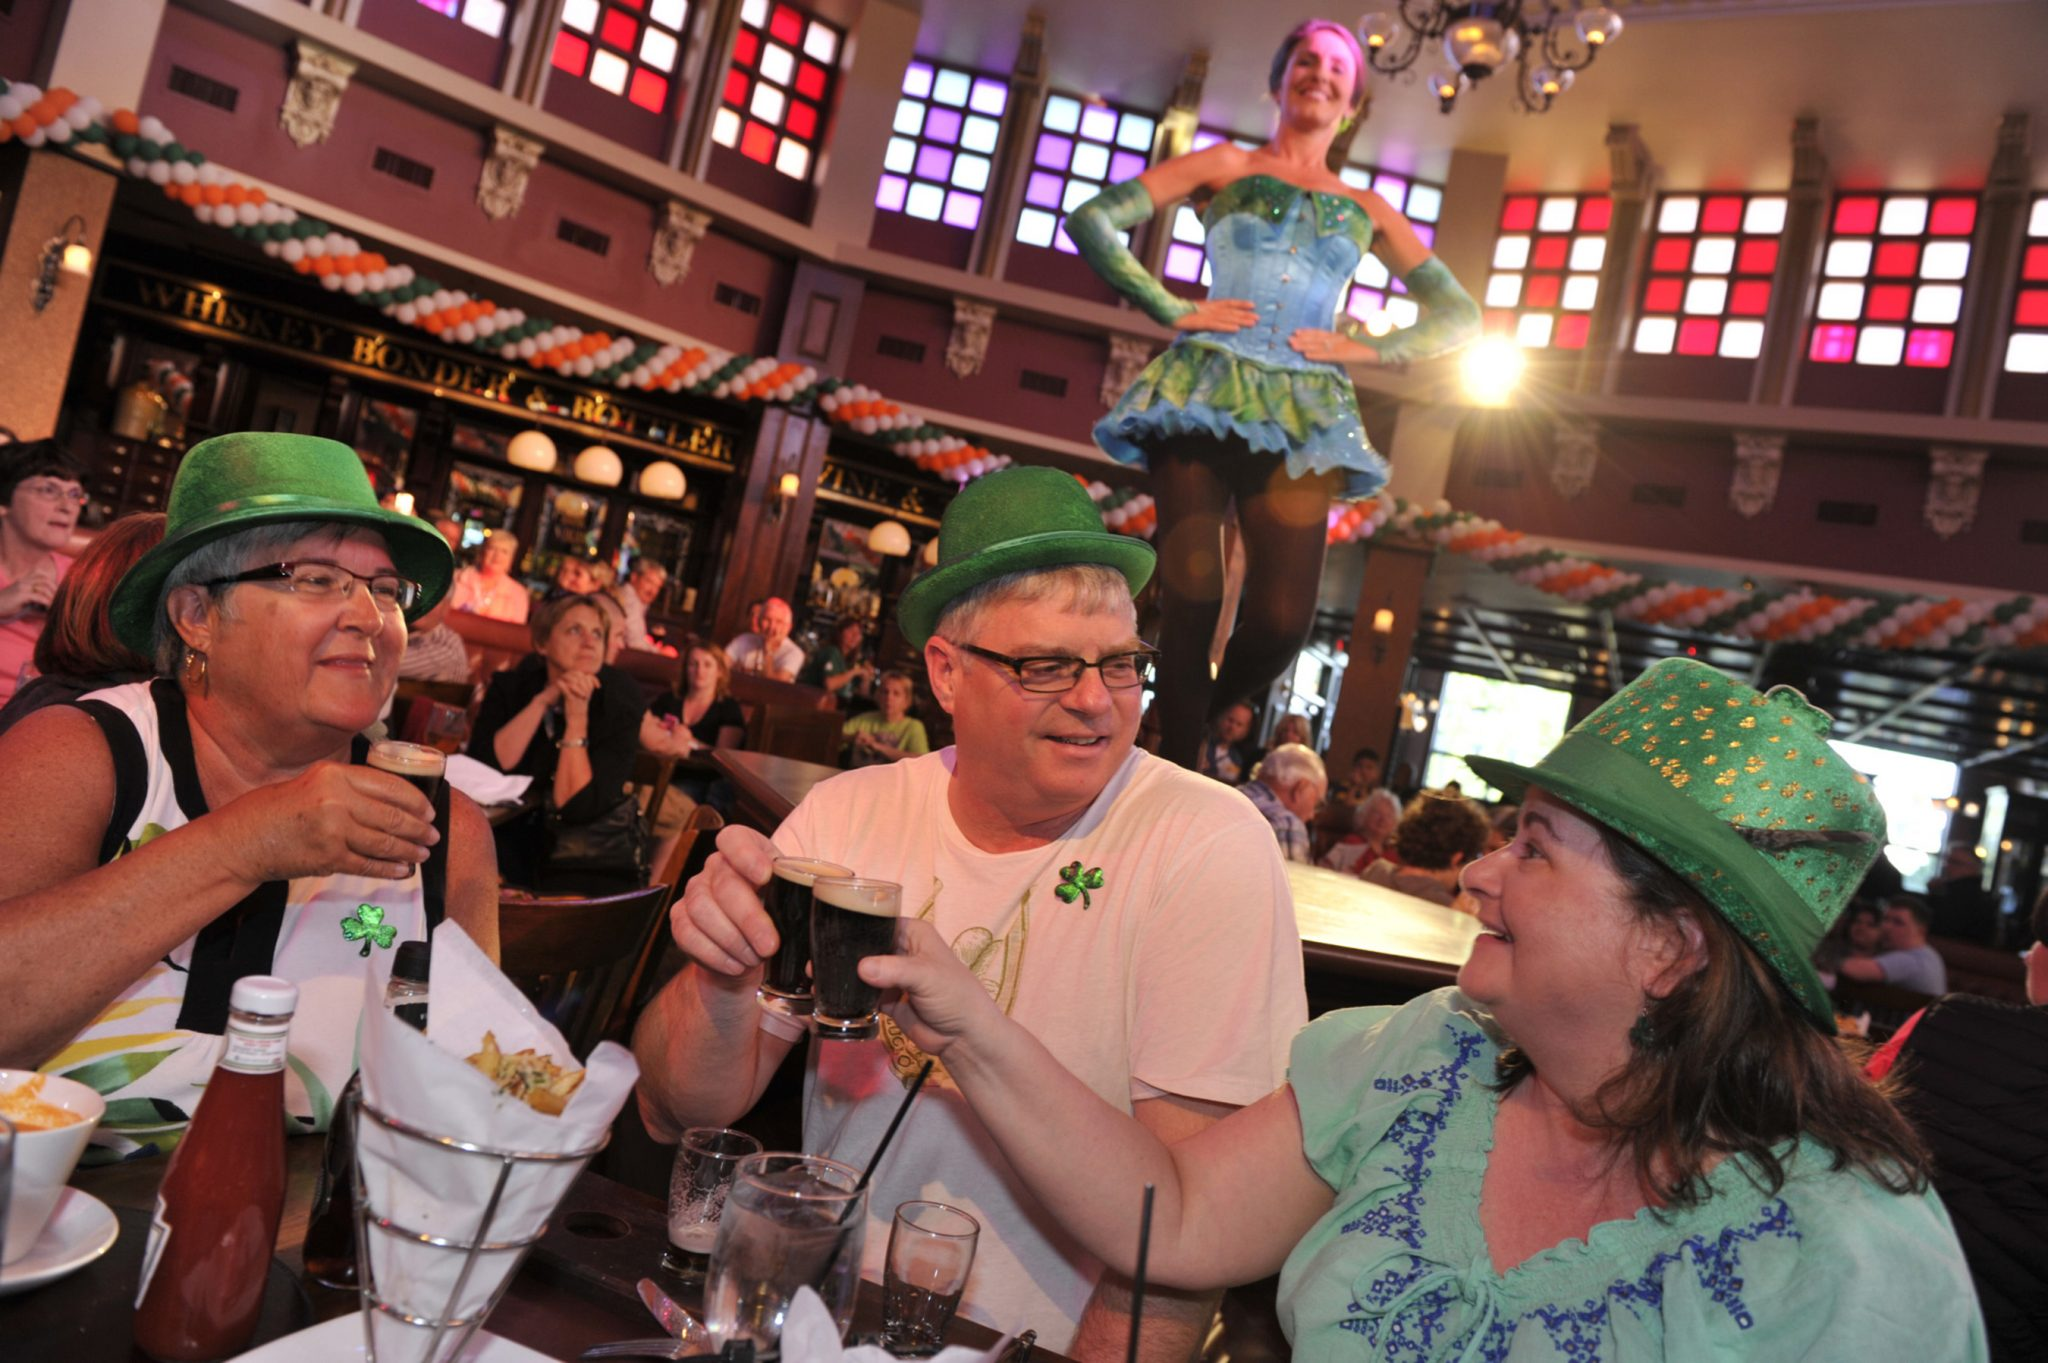 ResortLoop.com Episode 419 – Let's Spend St. Paddy's Day With Disney